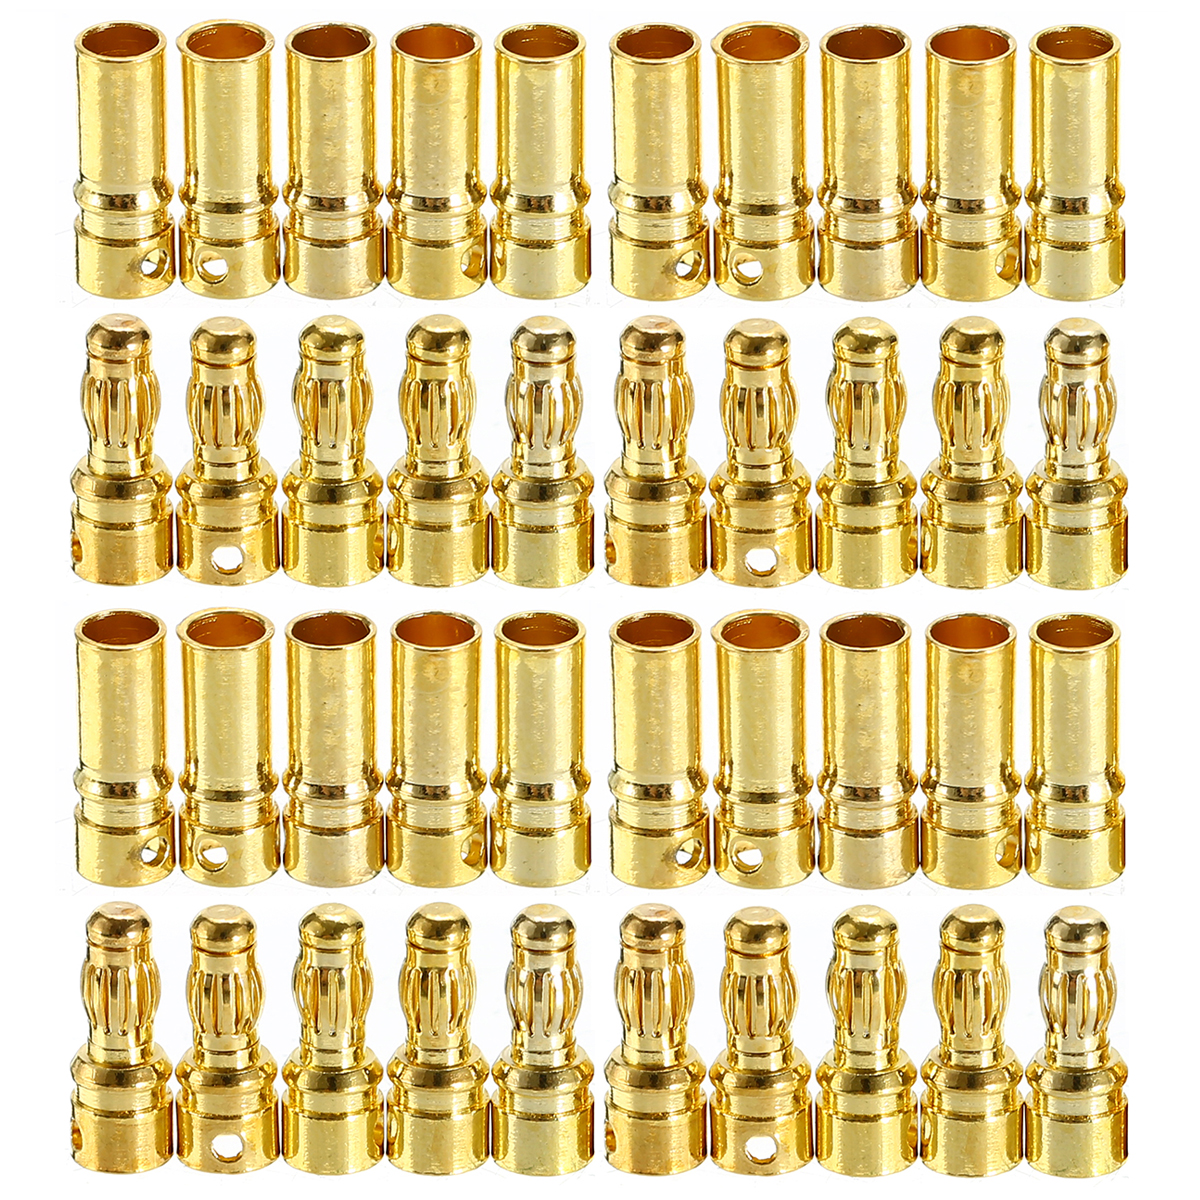 3.5mm Bullet Banana Connector Plug High Quality Brushless Motor Banana Plugs Bullet Connecter Plated For RC Battery ESC Motor